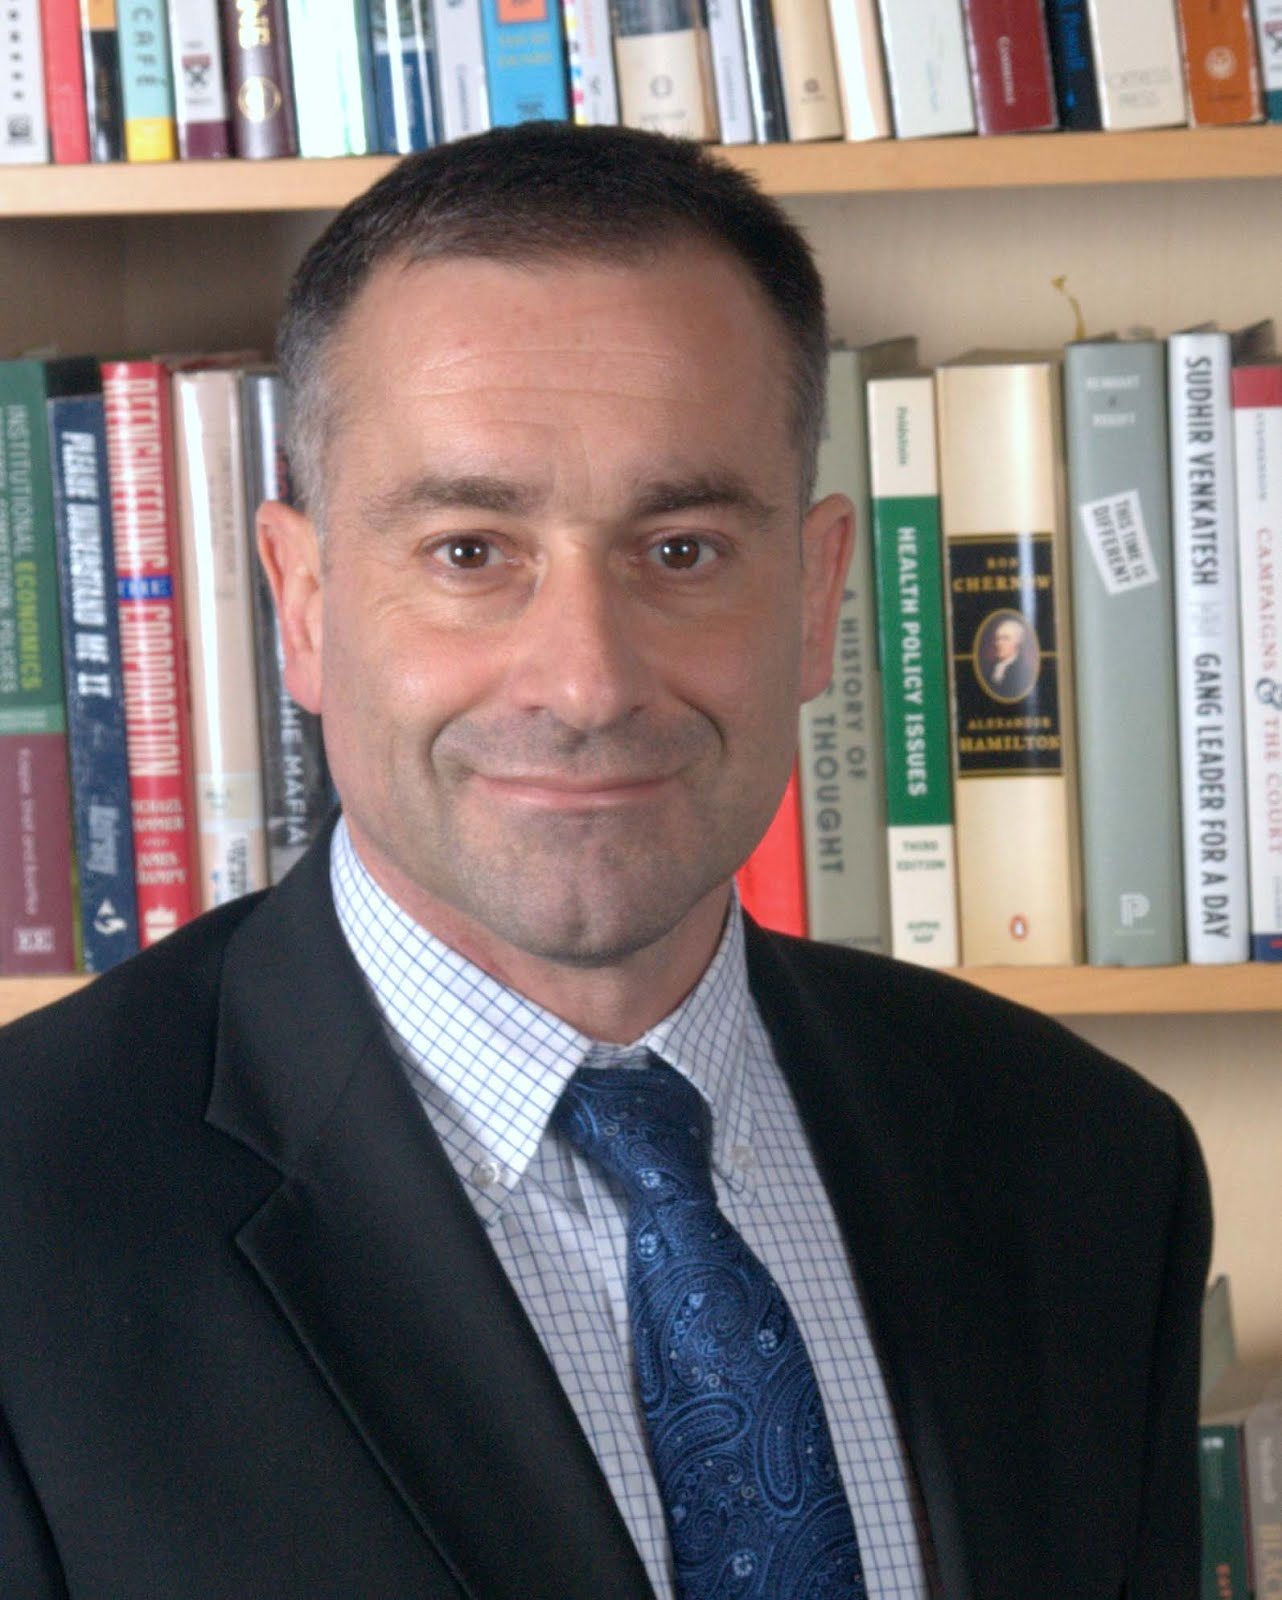 Mark Bonica, Ph.D., MBA